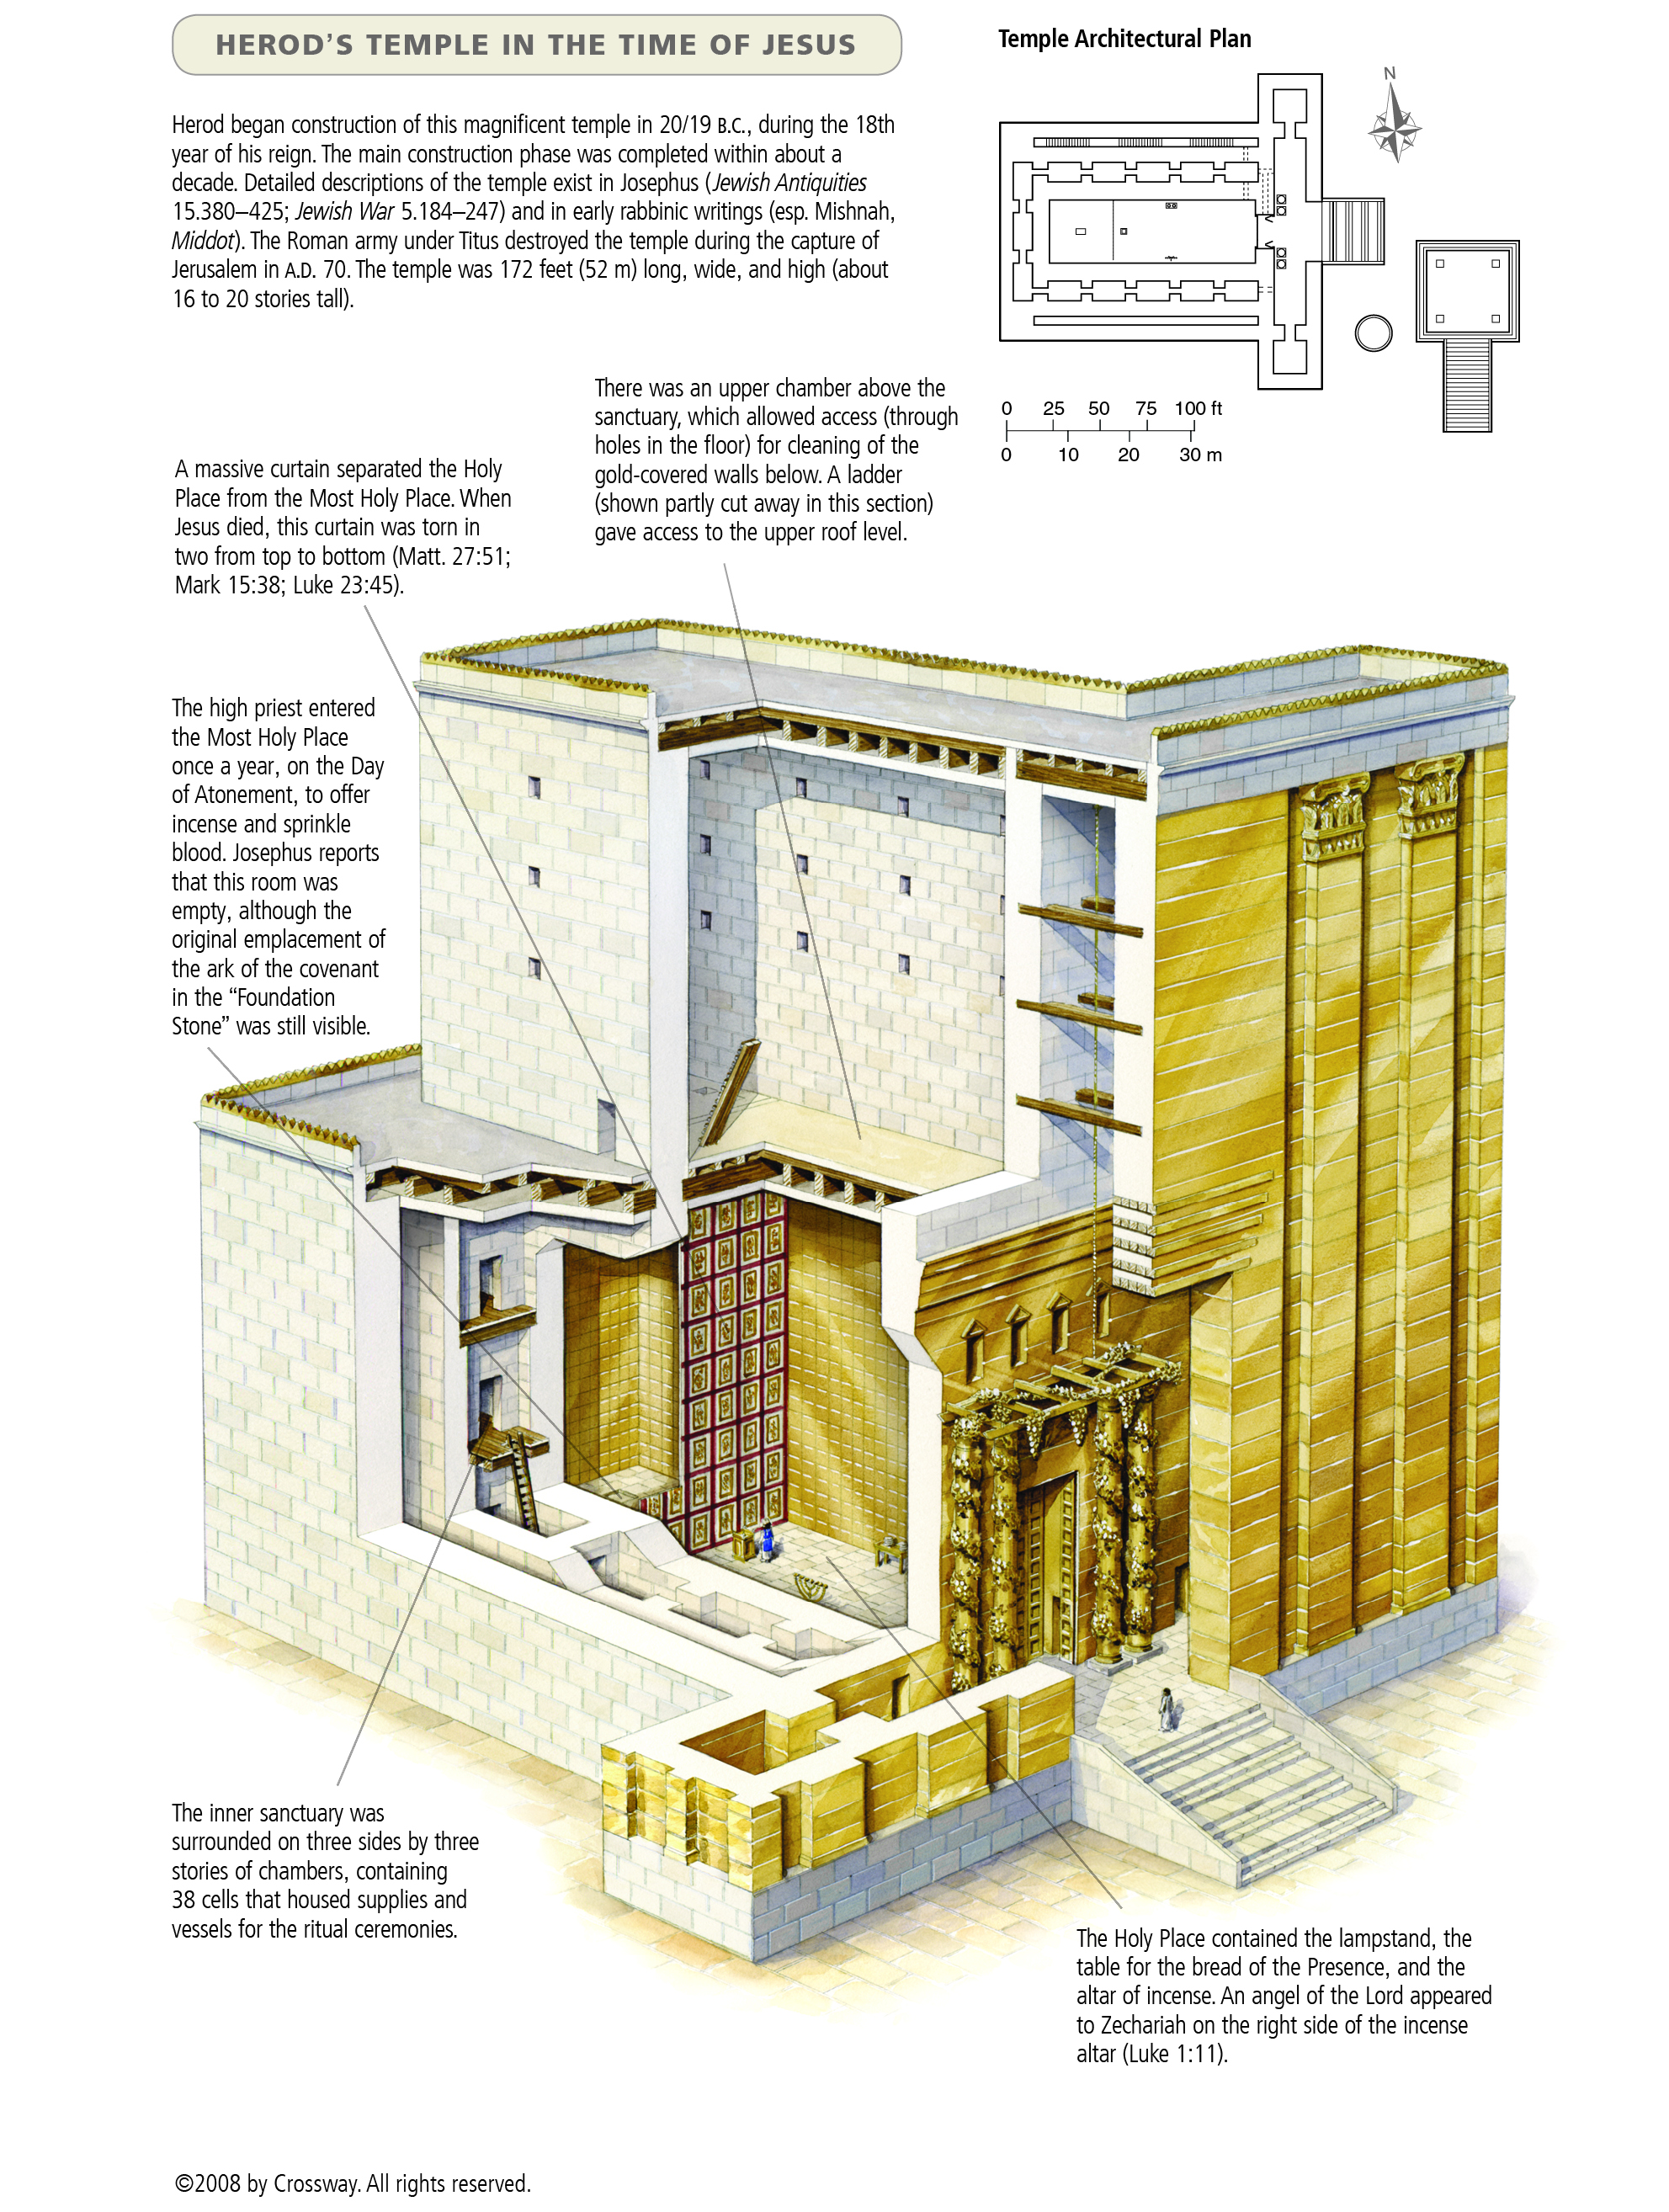 illustration-42-1 Herods Temple in the Time of Jesus.jpg